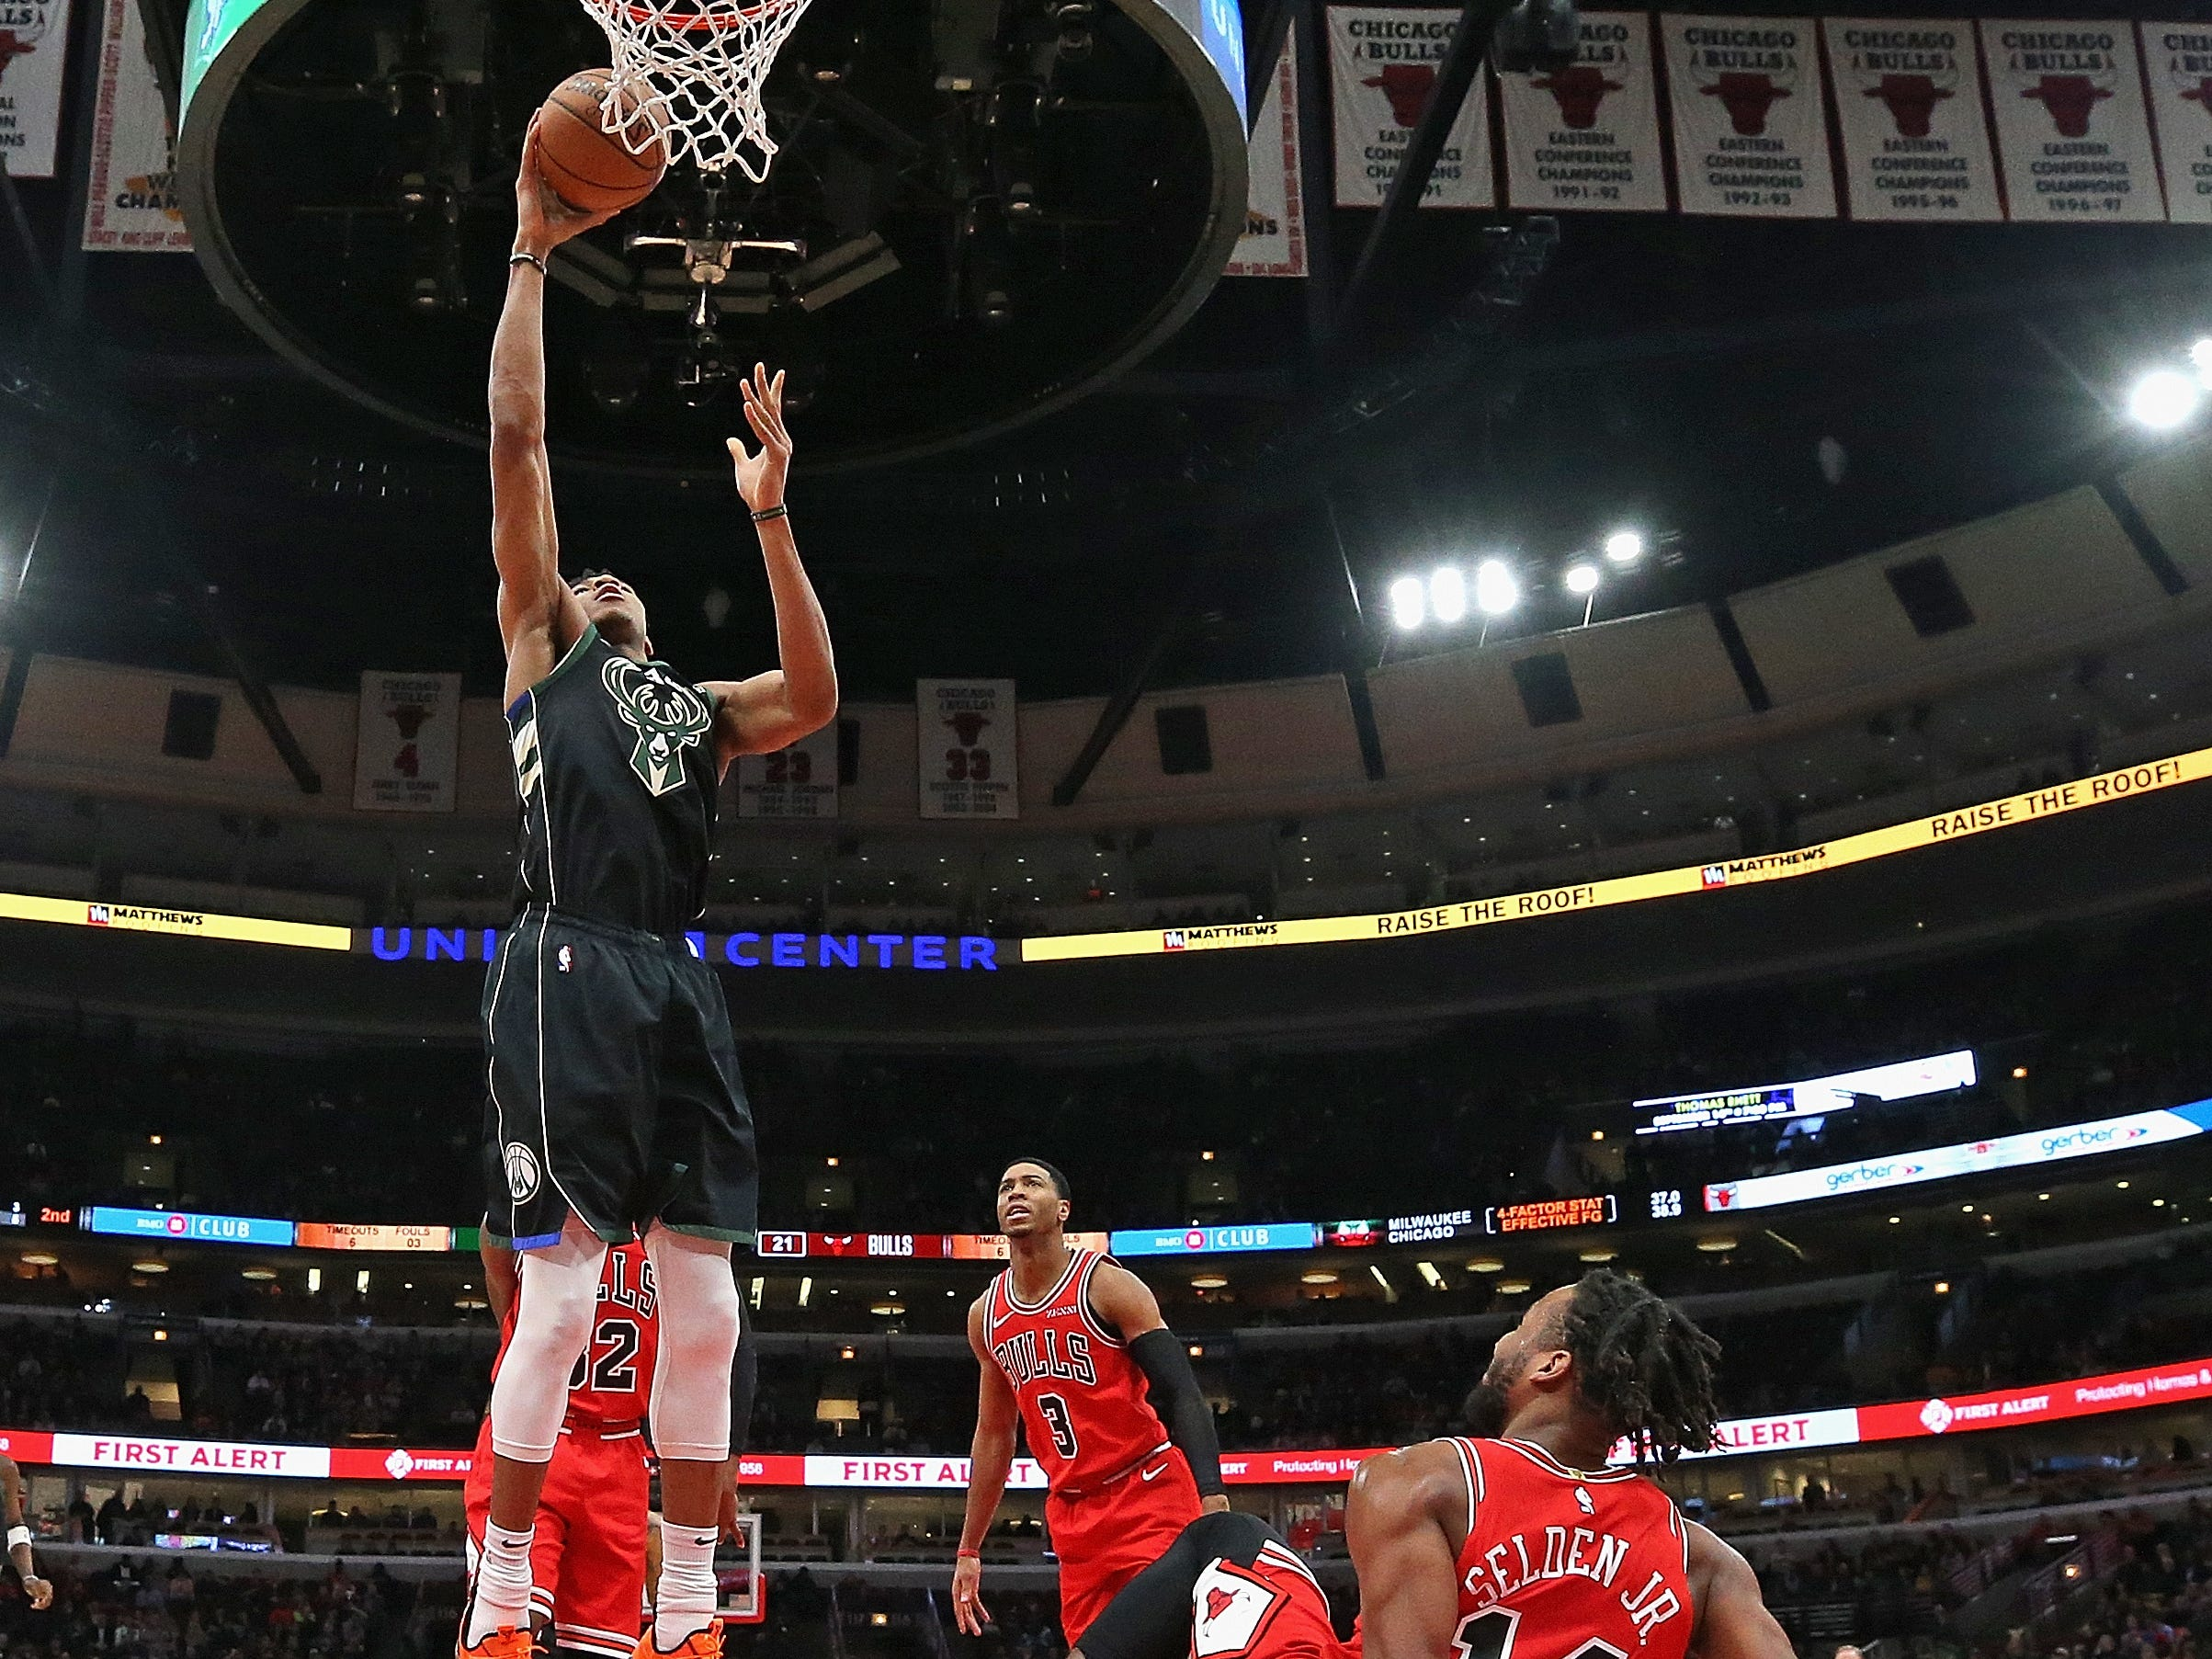 Giannis Antetokounmpo goes up for a dunk after Wayne Selden of the Bulls tried to draw an offensive foul by flopping to the court as the Bucks forward drove to the basket during the second half Monday.